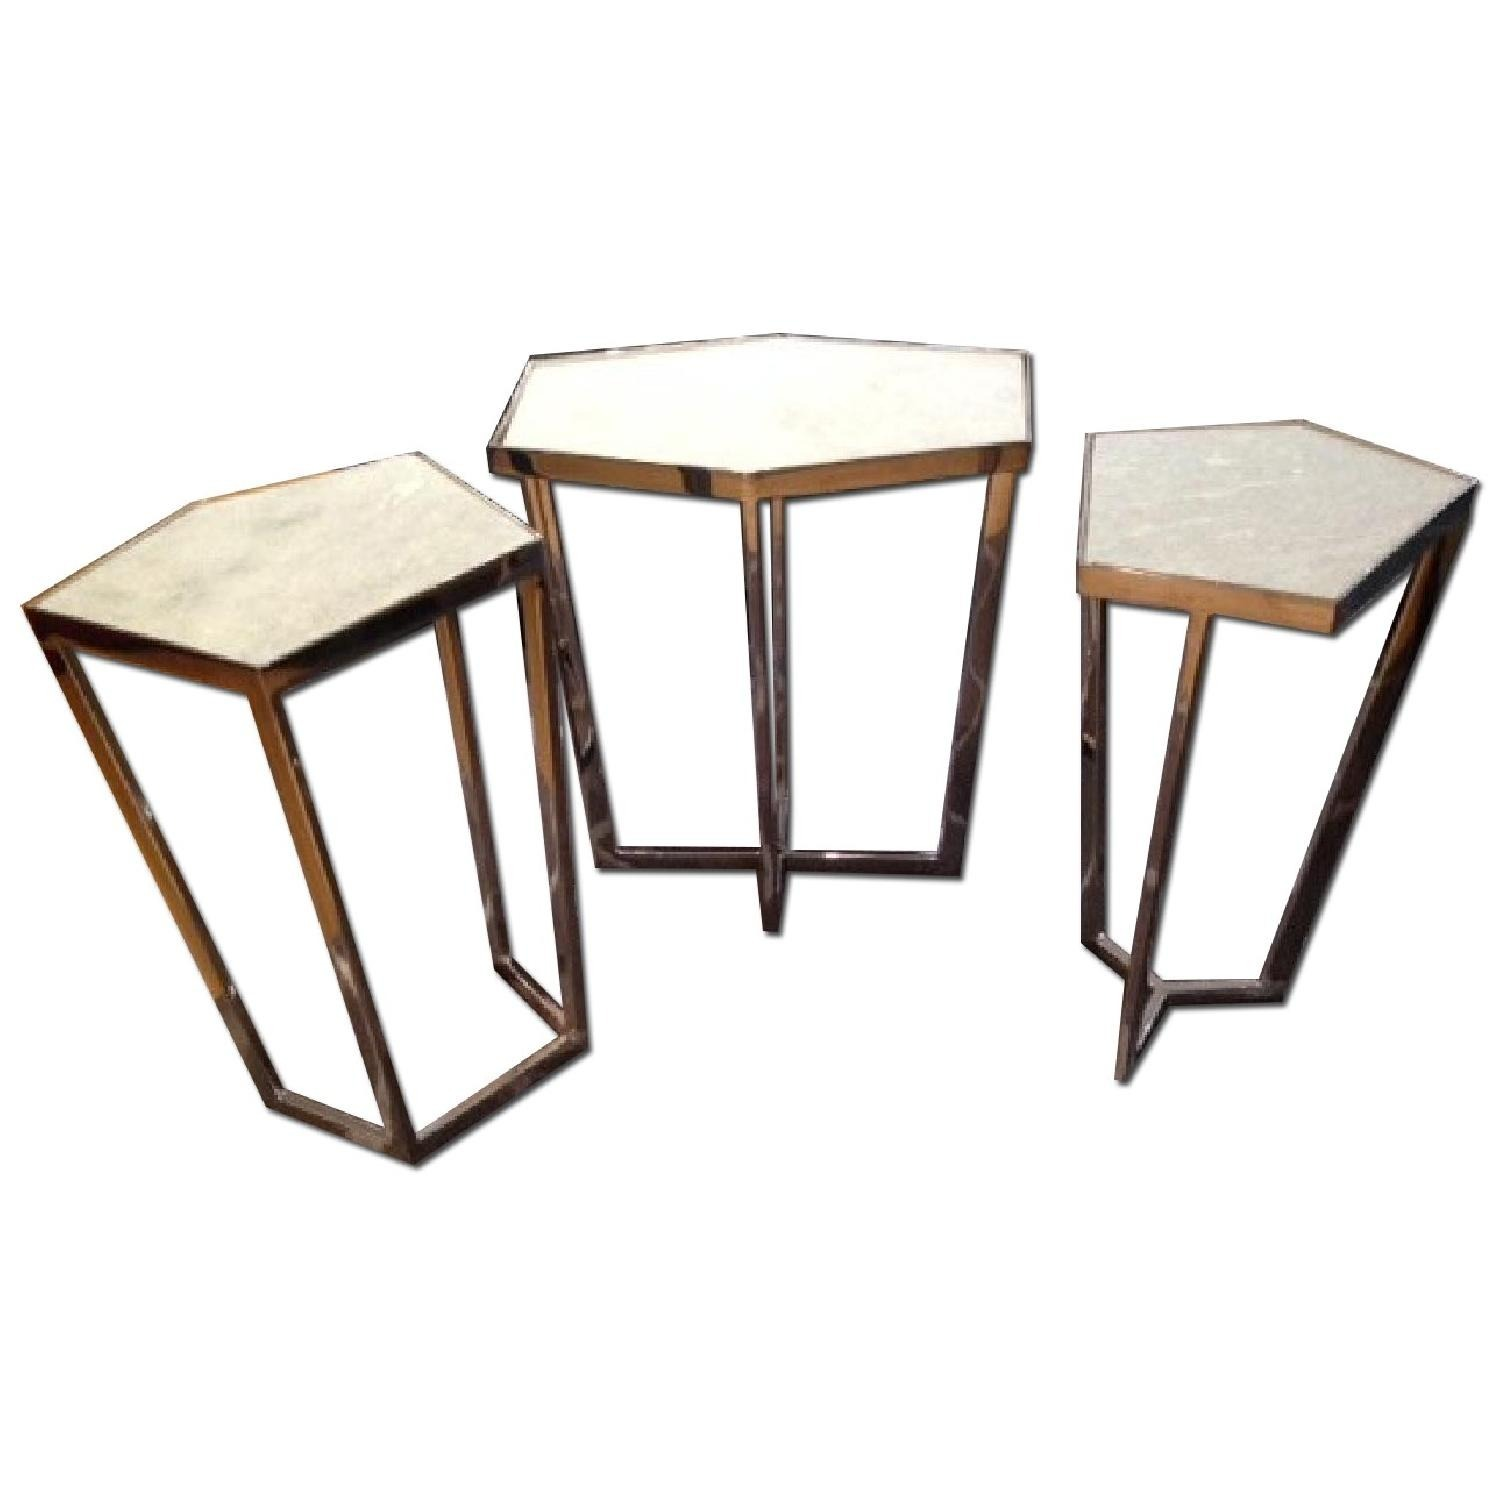 Marble and Chrome End Tables - image-1